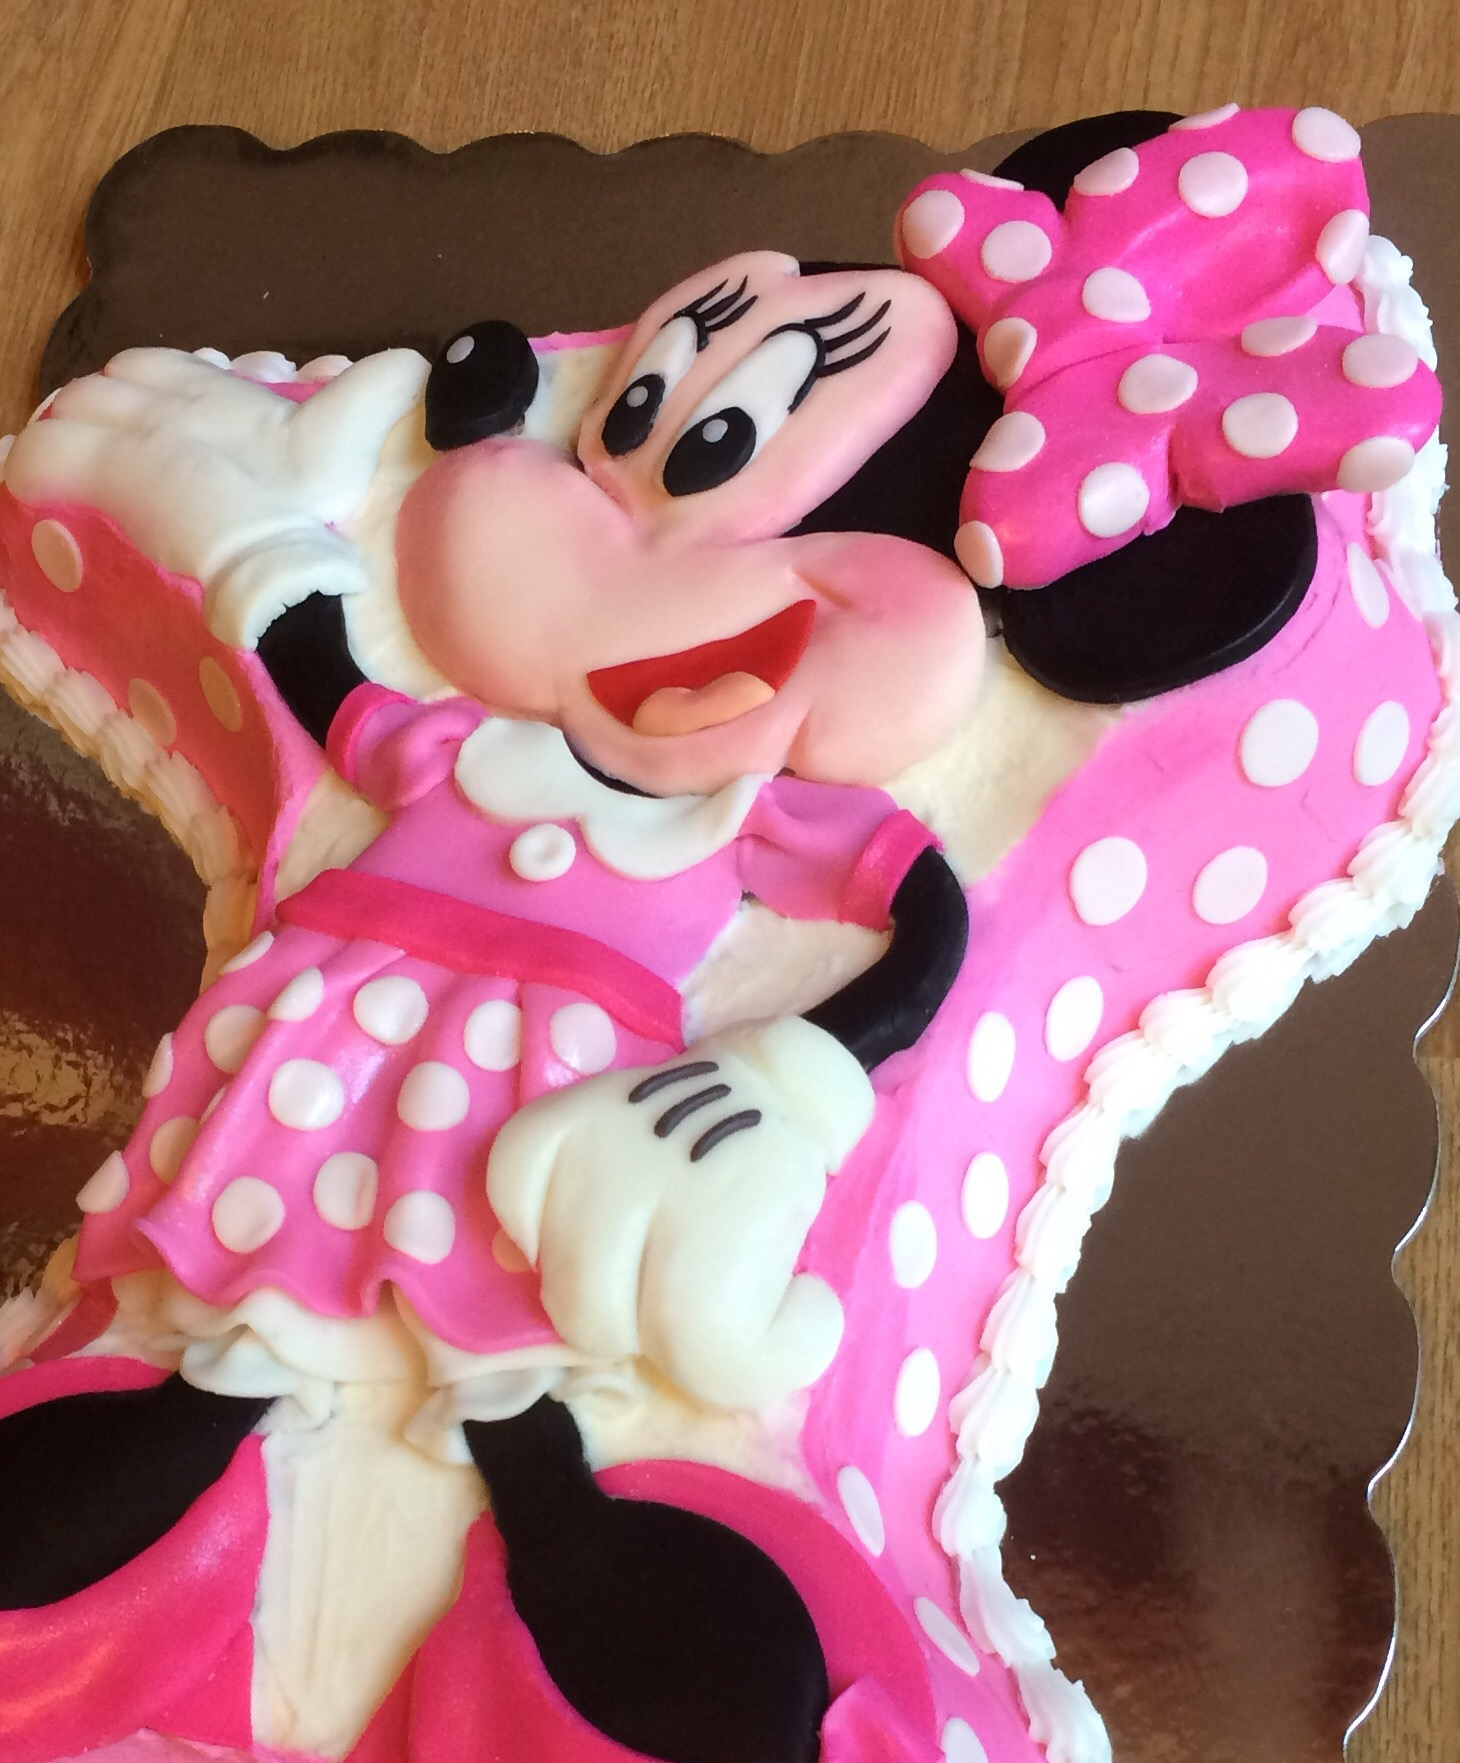 Fantastic Wilton Minnie Mouse Cake Nicholes Custom Cakes Funny Birthday Cards Online Barepcheapnameinfo